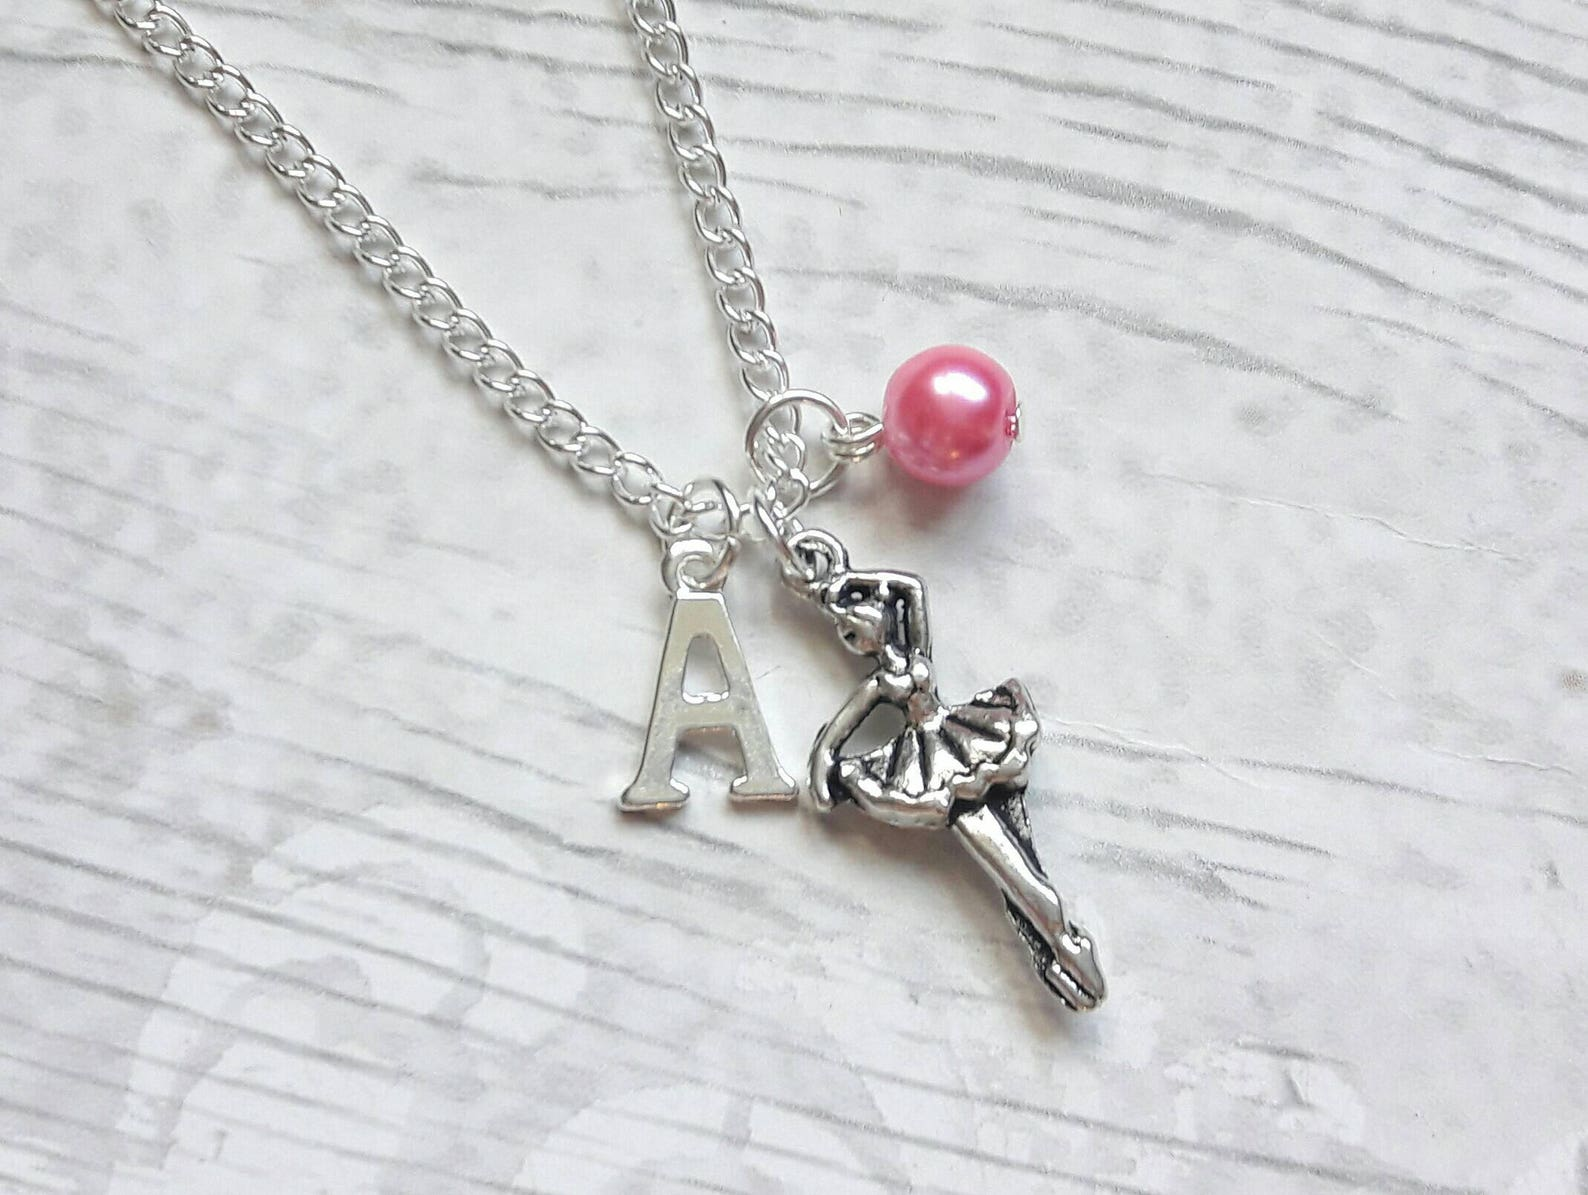 ballerina necklace, ballet dancer jewelry, dance necklace, personalised necklace, kids jewellery, gifts for girls, dancing prese